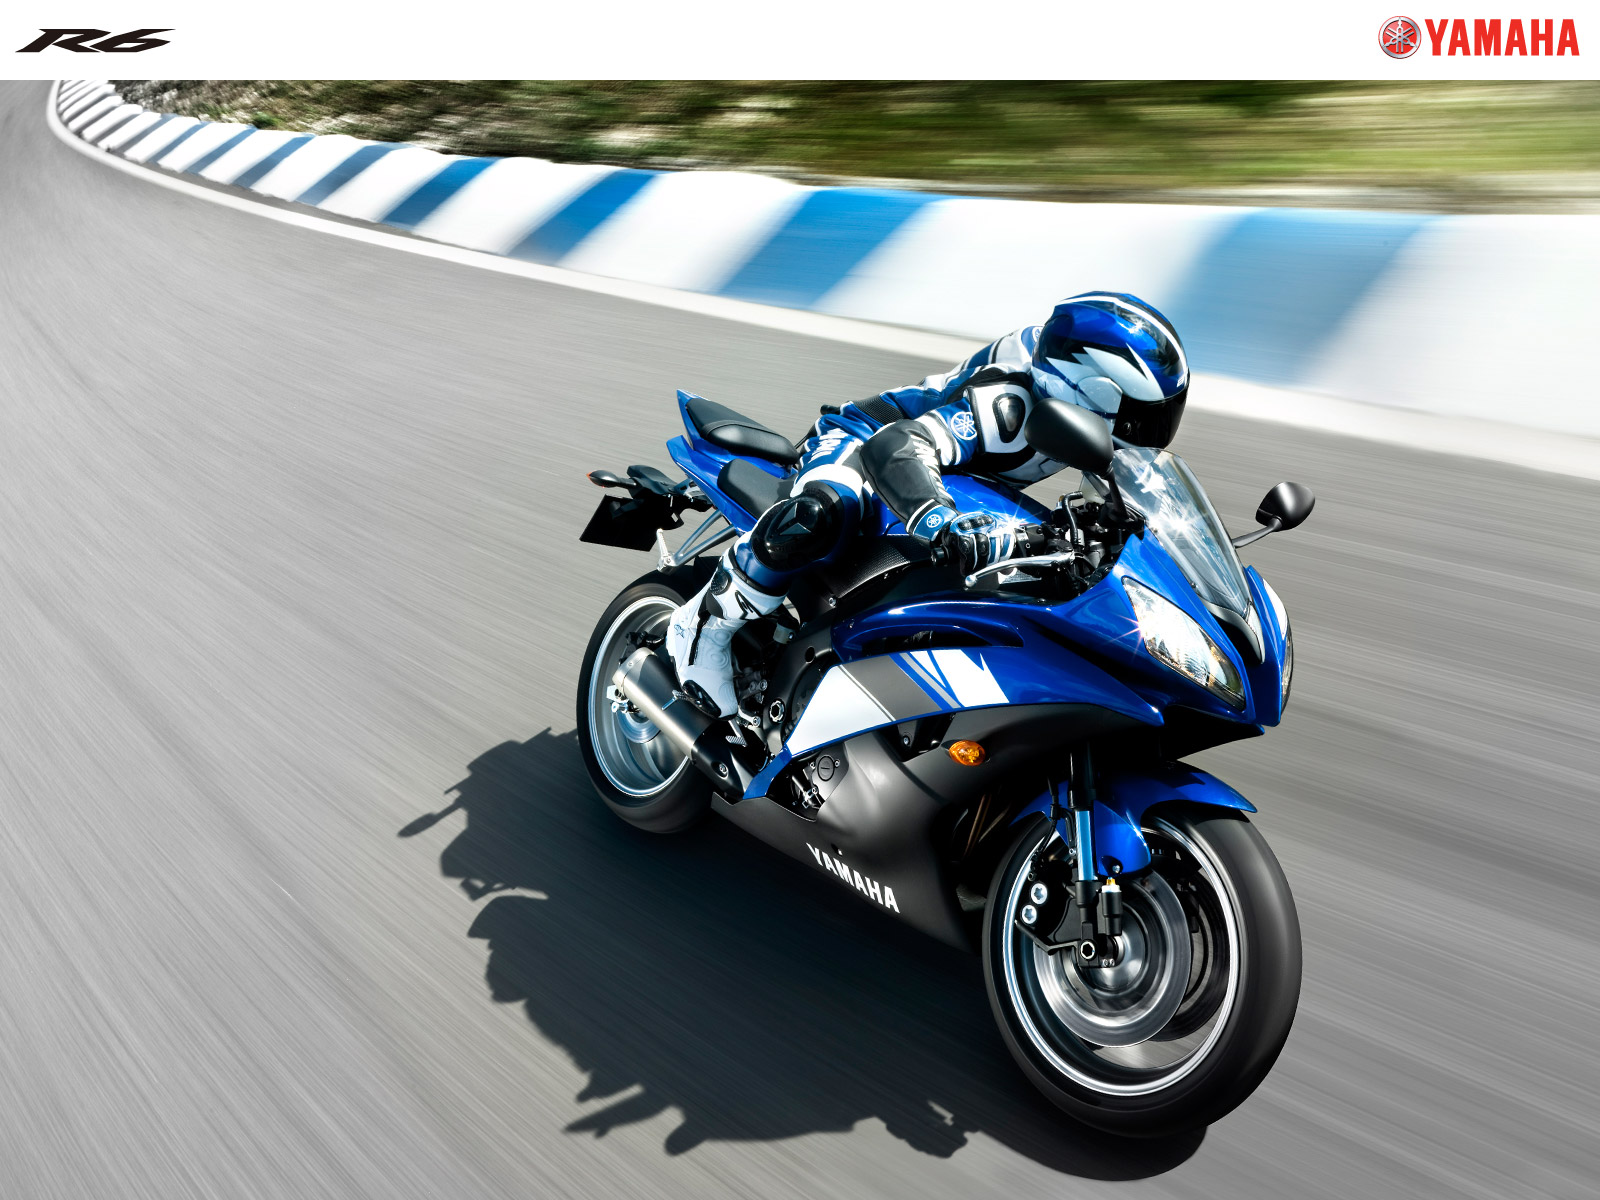 yamaha r6 wallpaper 7 1600x1200